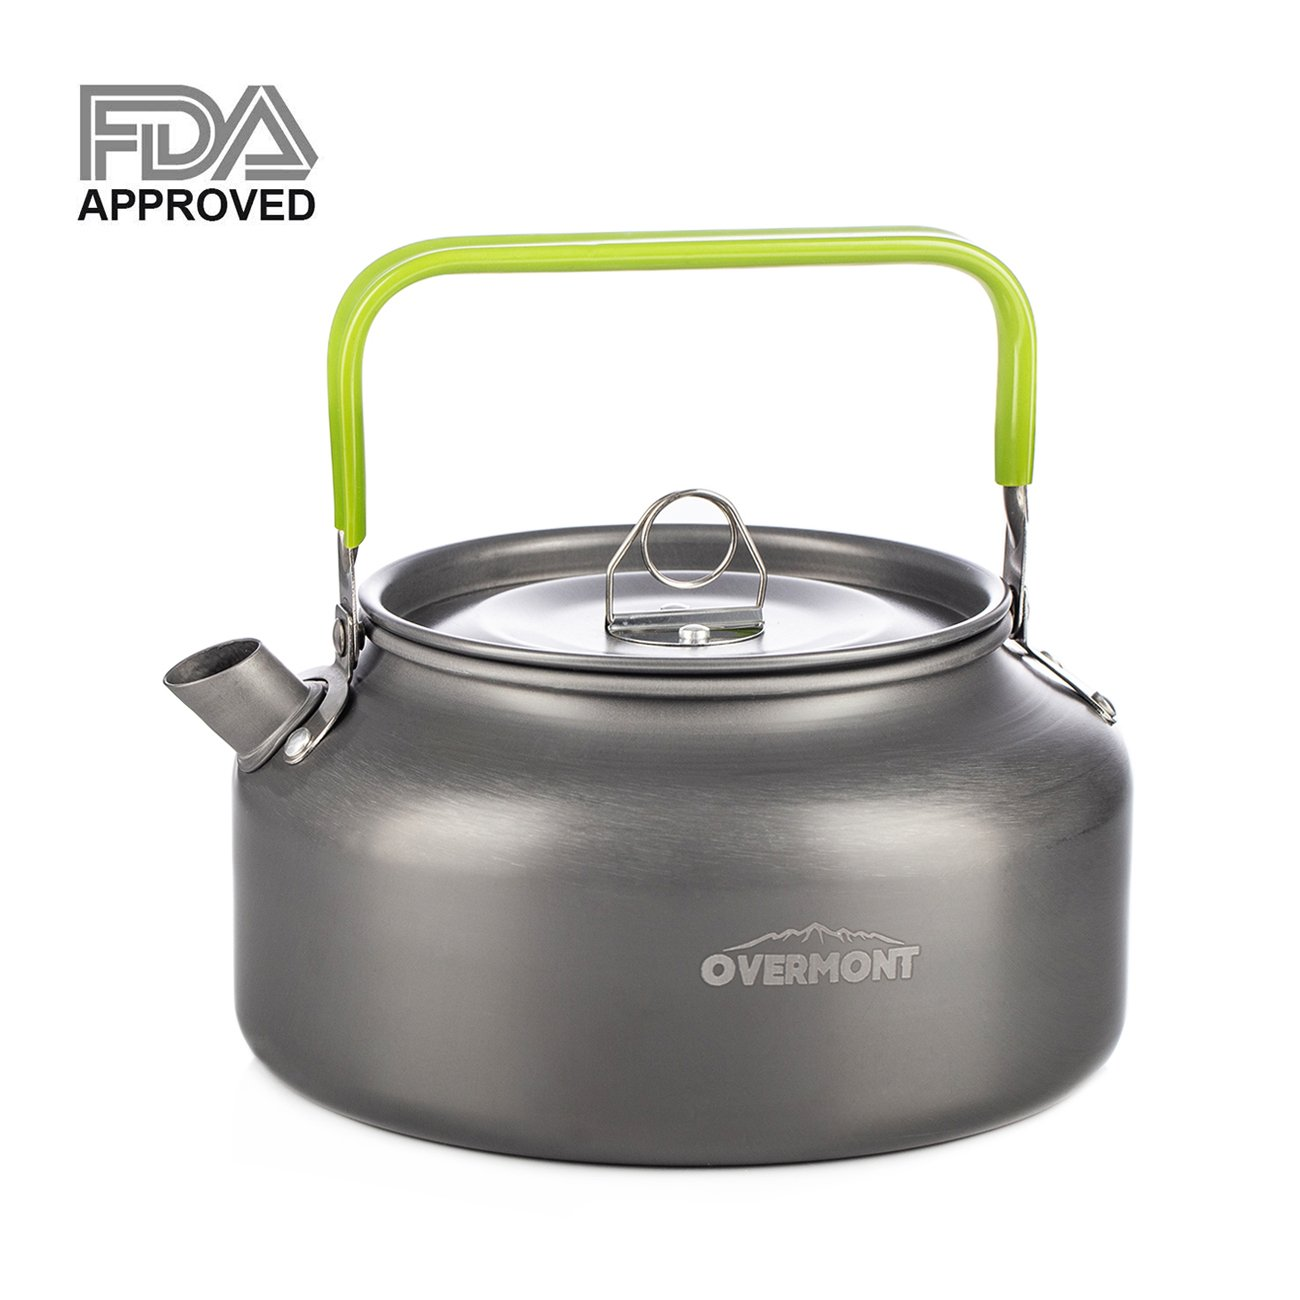 Overmont All-Round Dutch Oven Camping Kettle【Dual Function : Lid Griddle】【with Lid Lifter】【Pre Seasoned】 Cast Iron Dutch Oven Pot Handle for Camping Cooking BBQ Baking (1.2L/42fl oz)